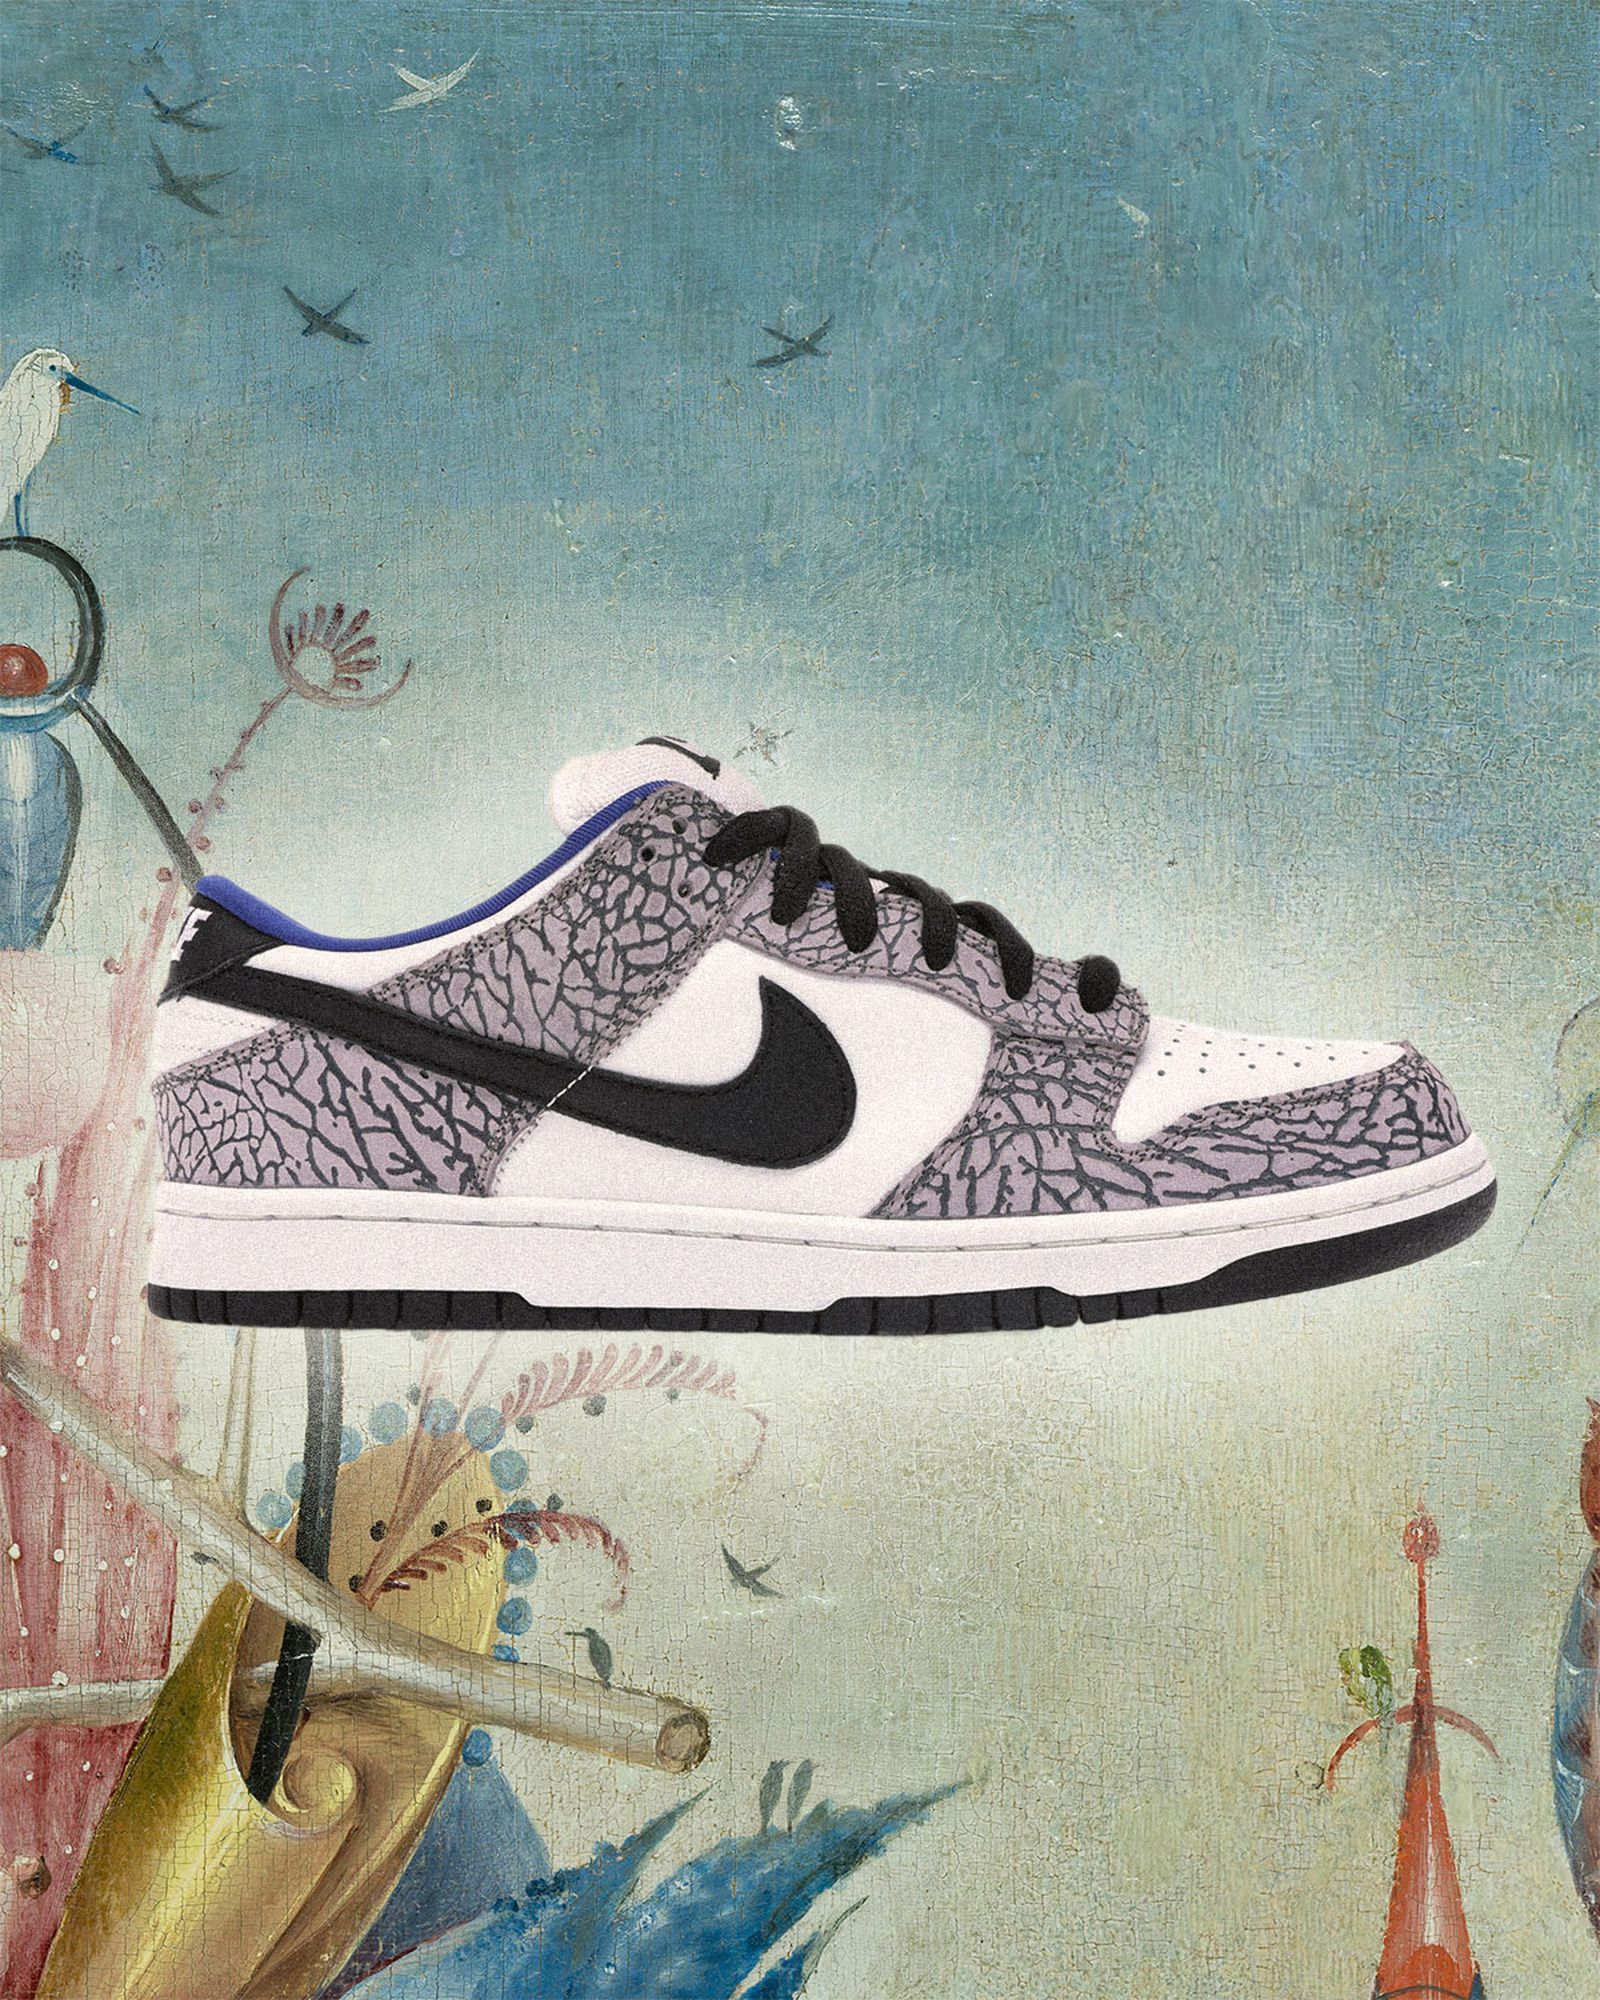 03-Nike-SB-Dunk-Low-Supreme-White-Cement-2002-Product